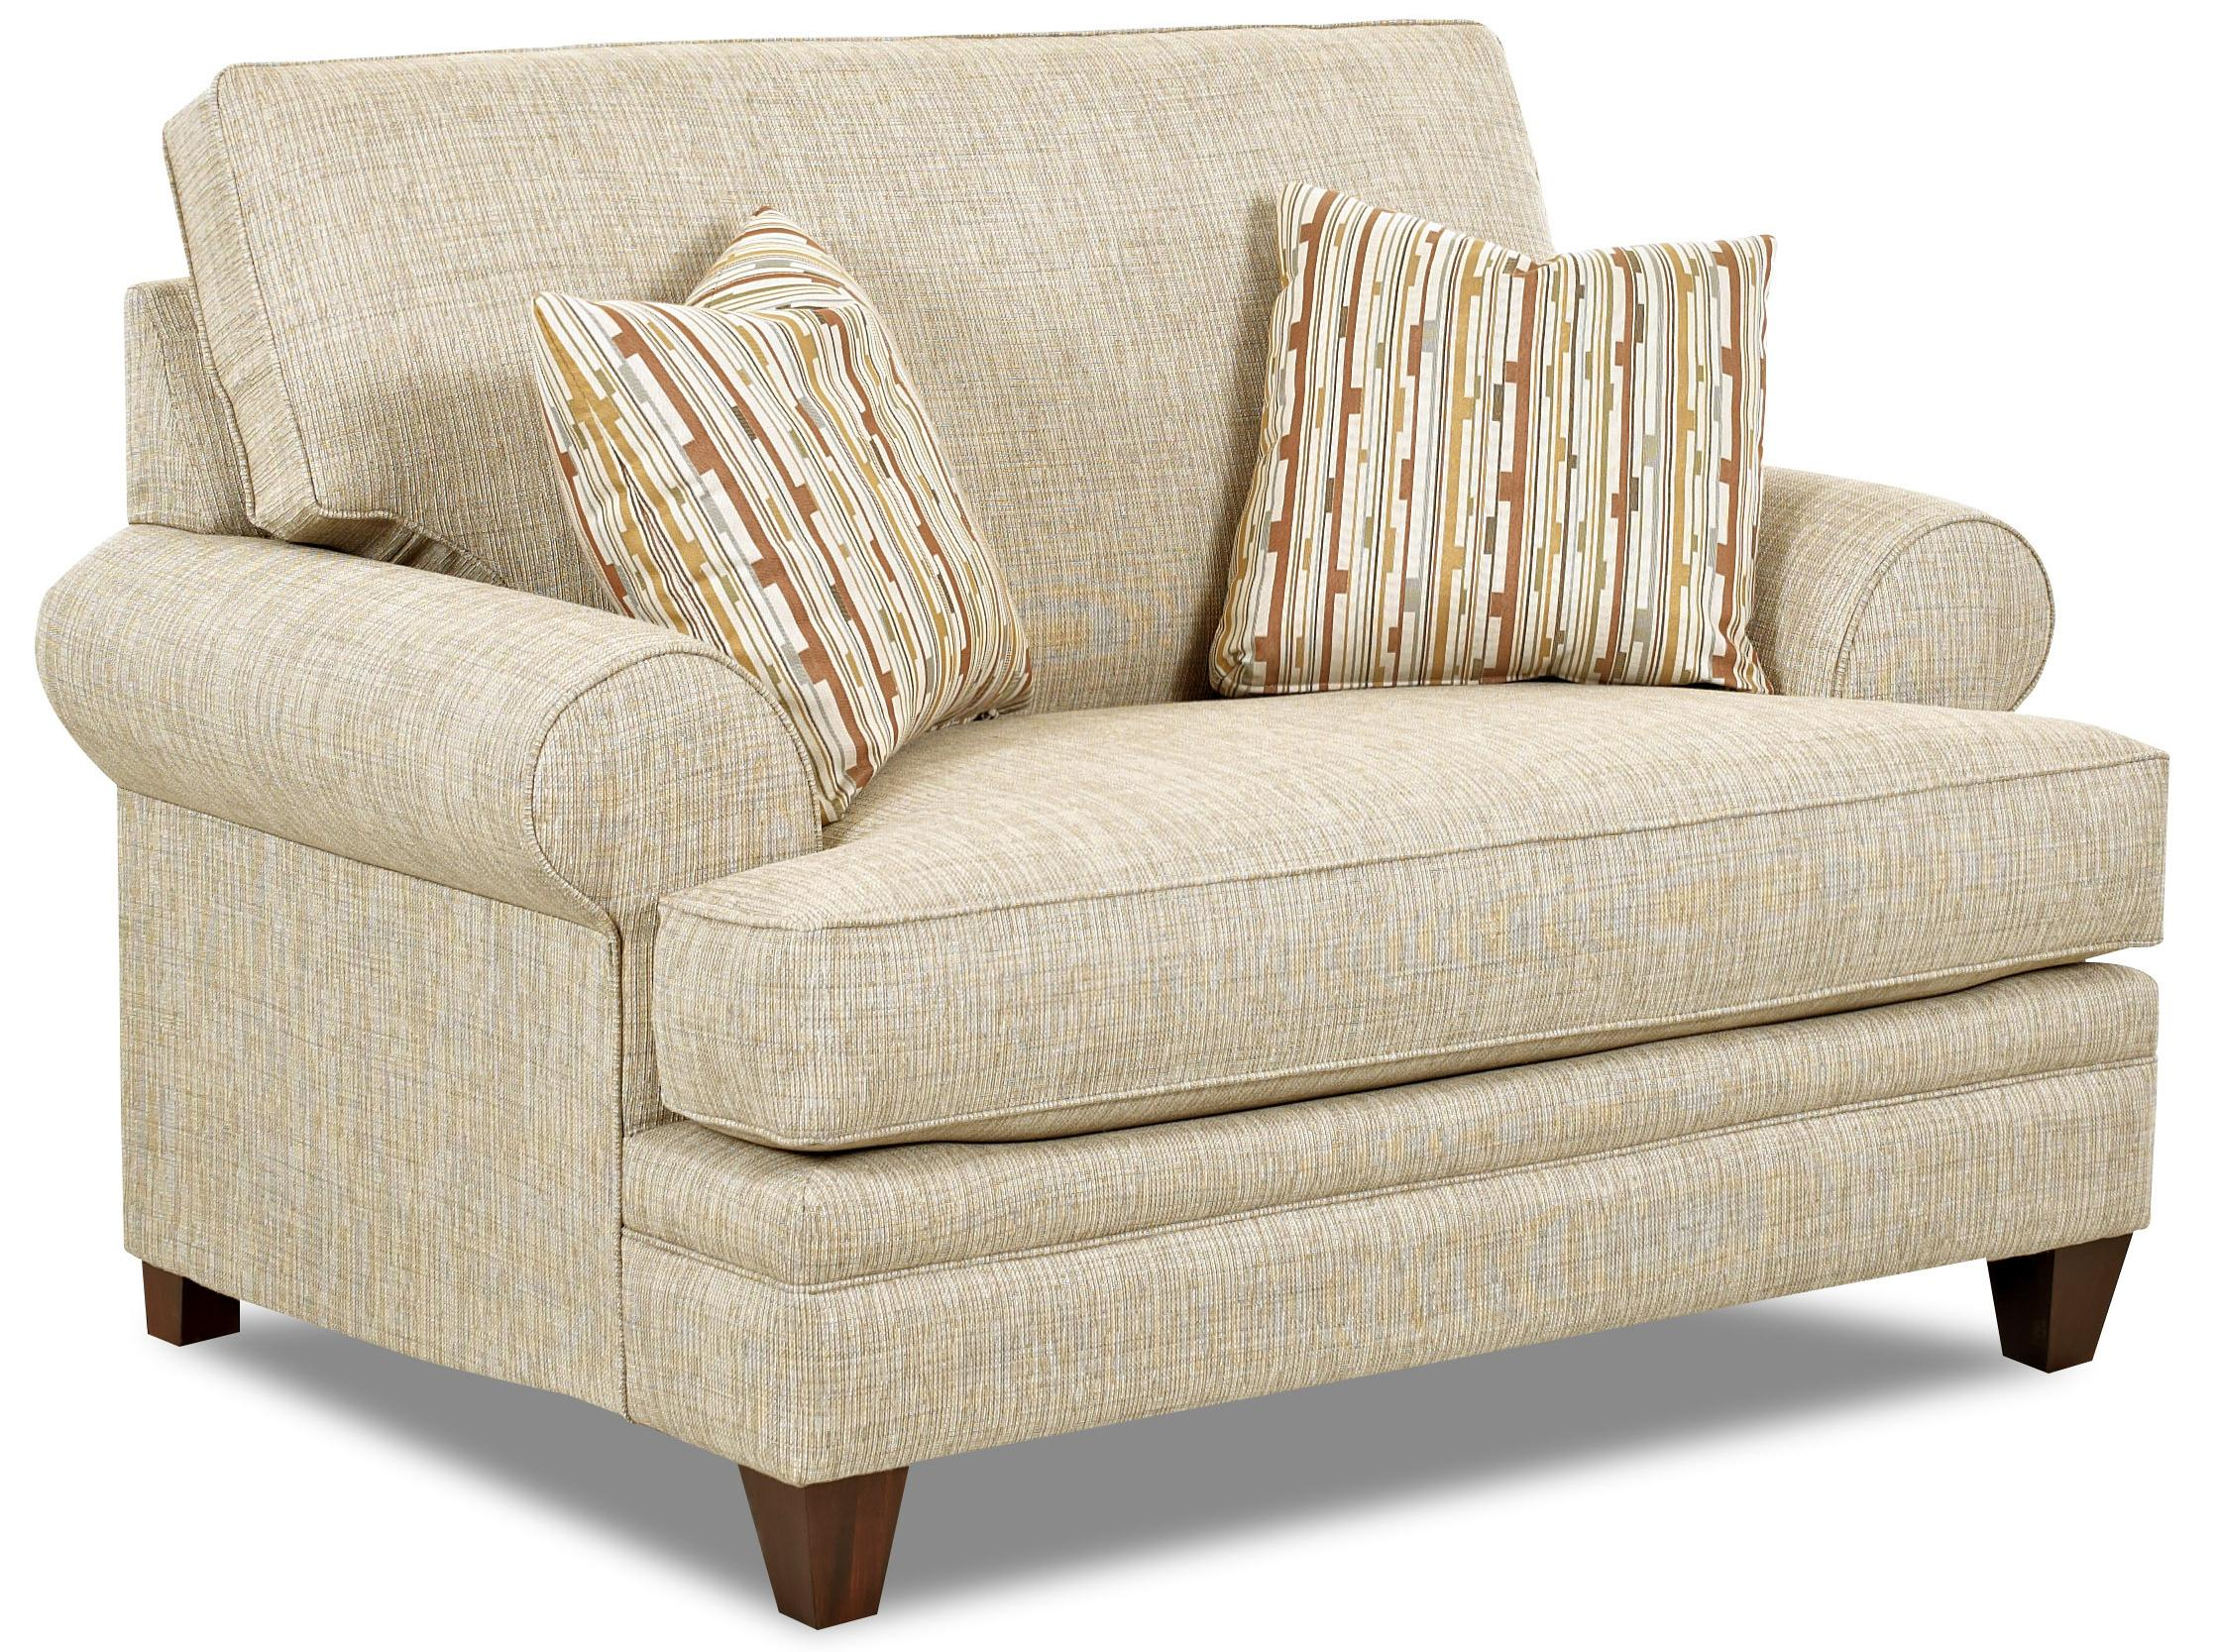 Klaussner Fresno Transitional Oversized Chair with Accent